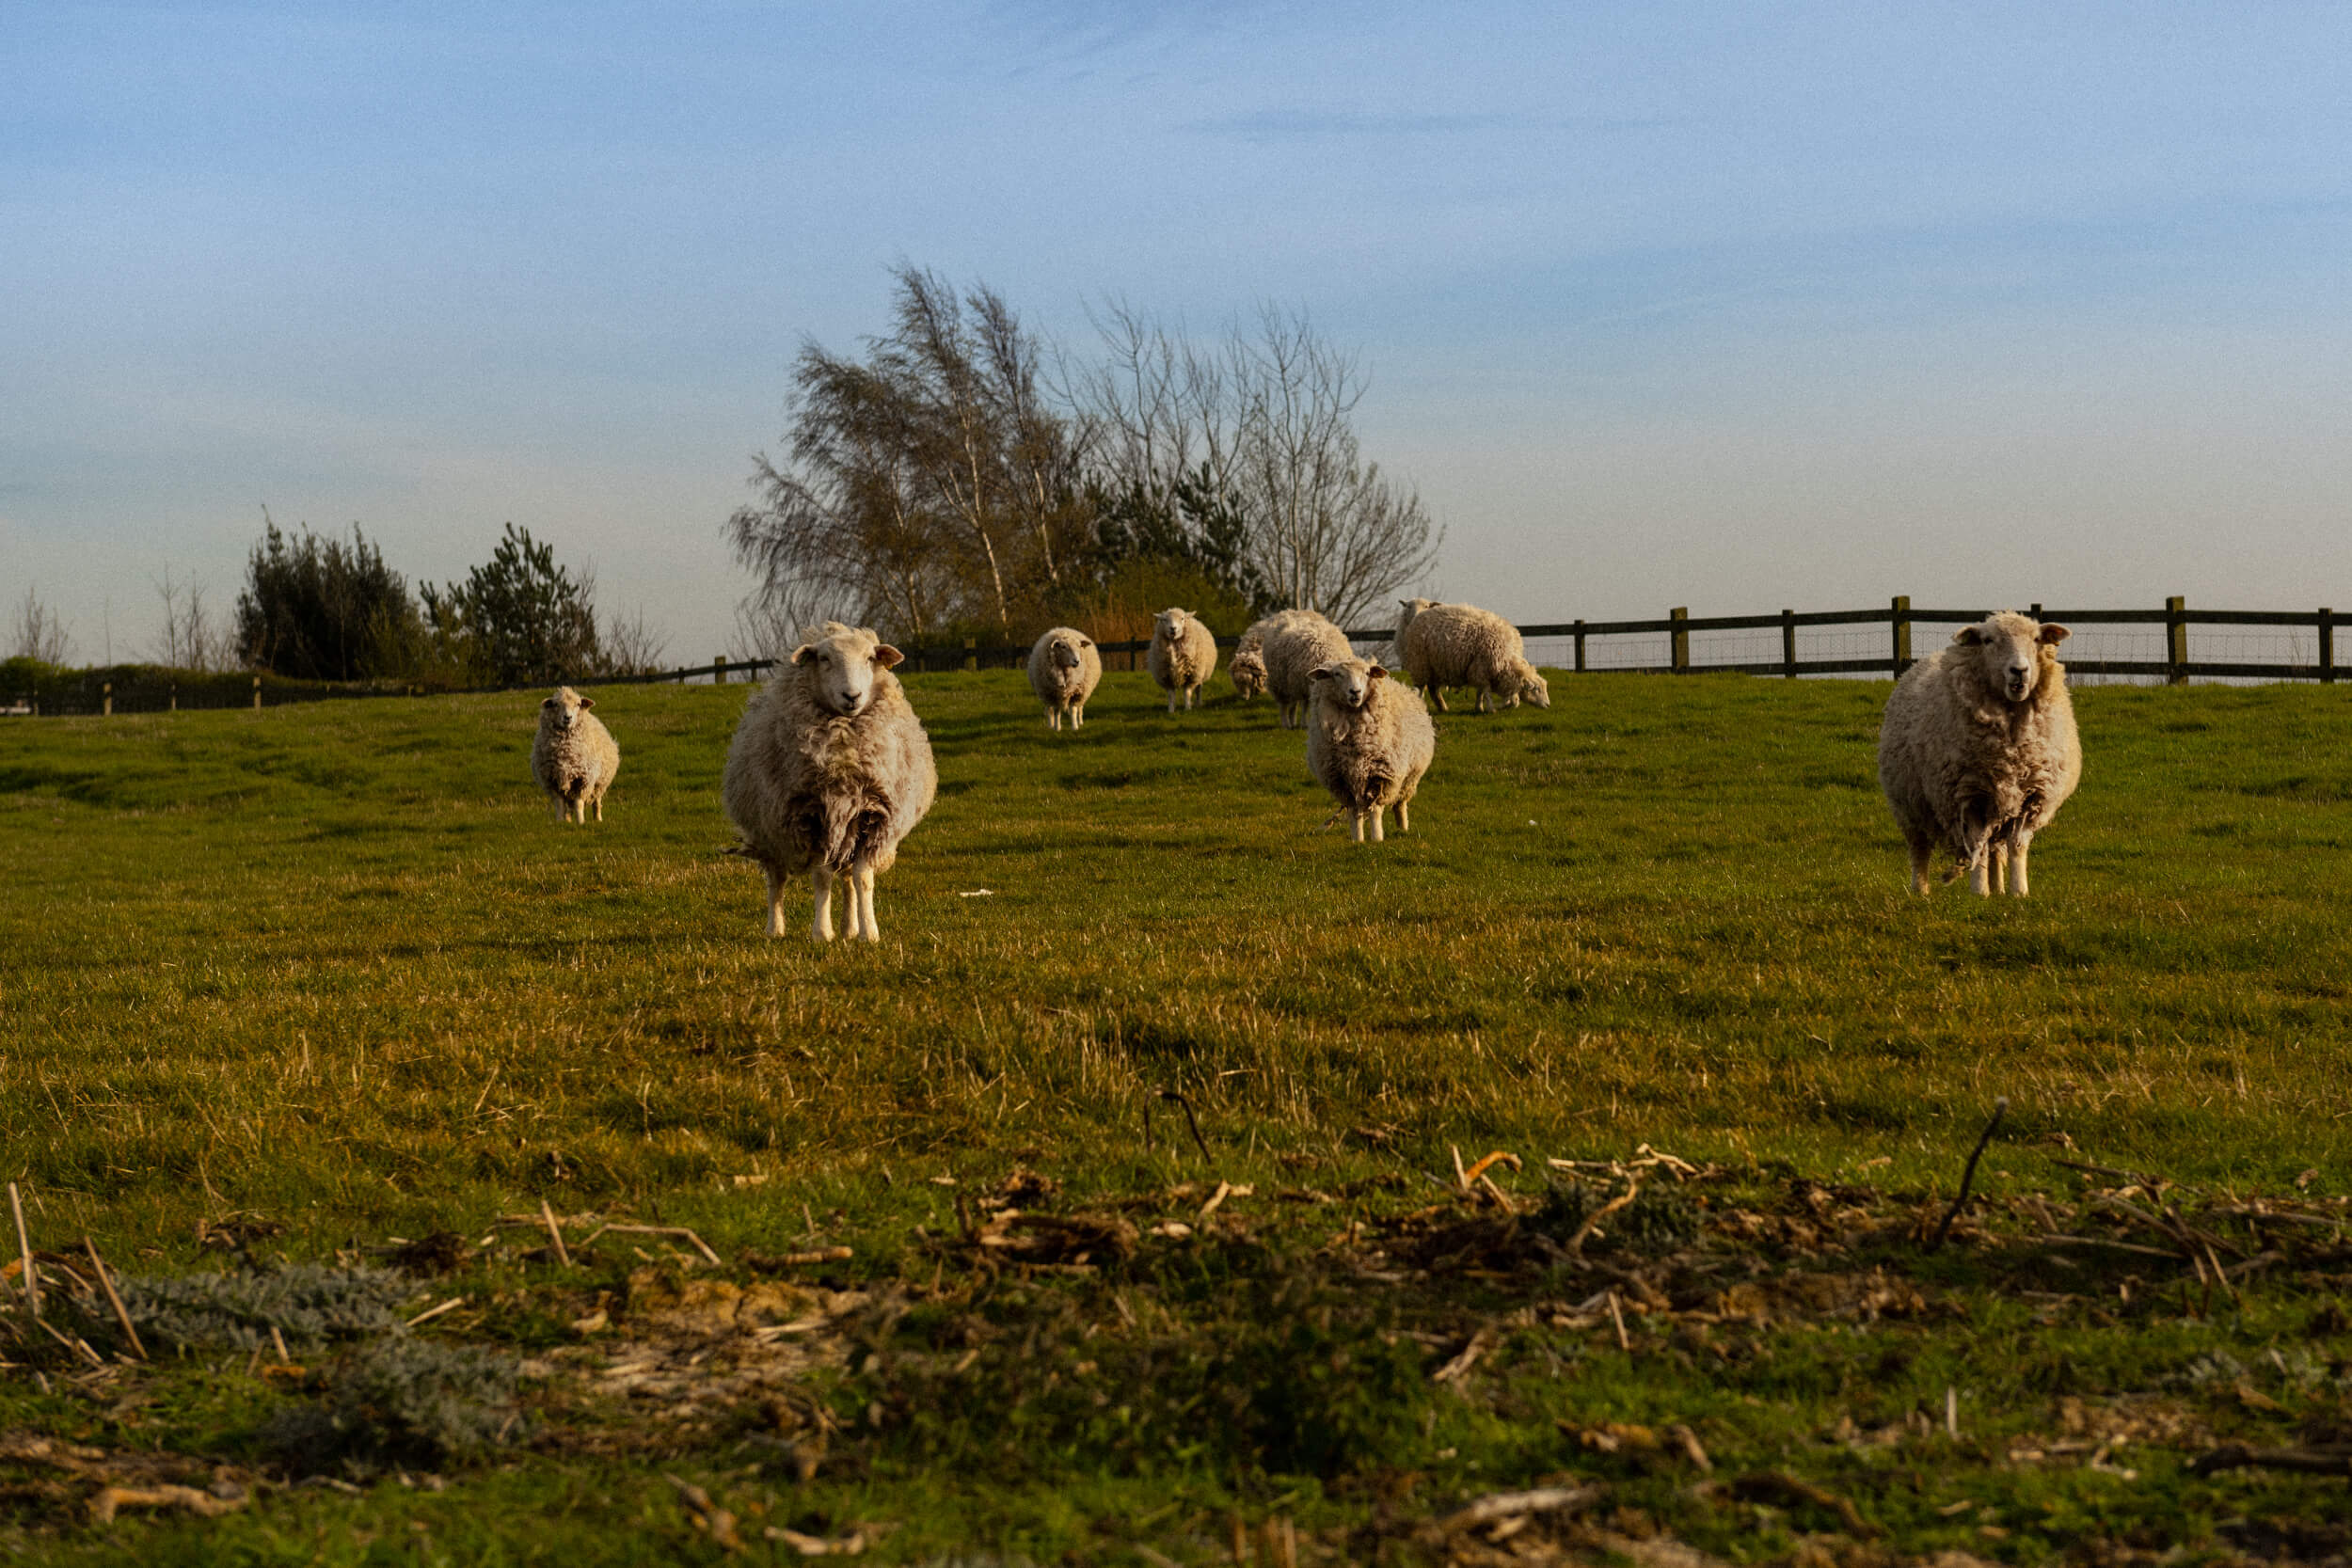 Sheep on the fields